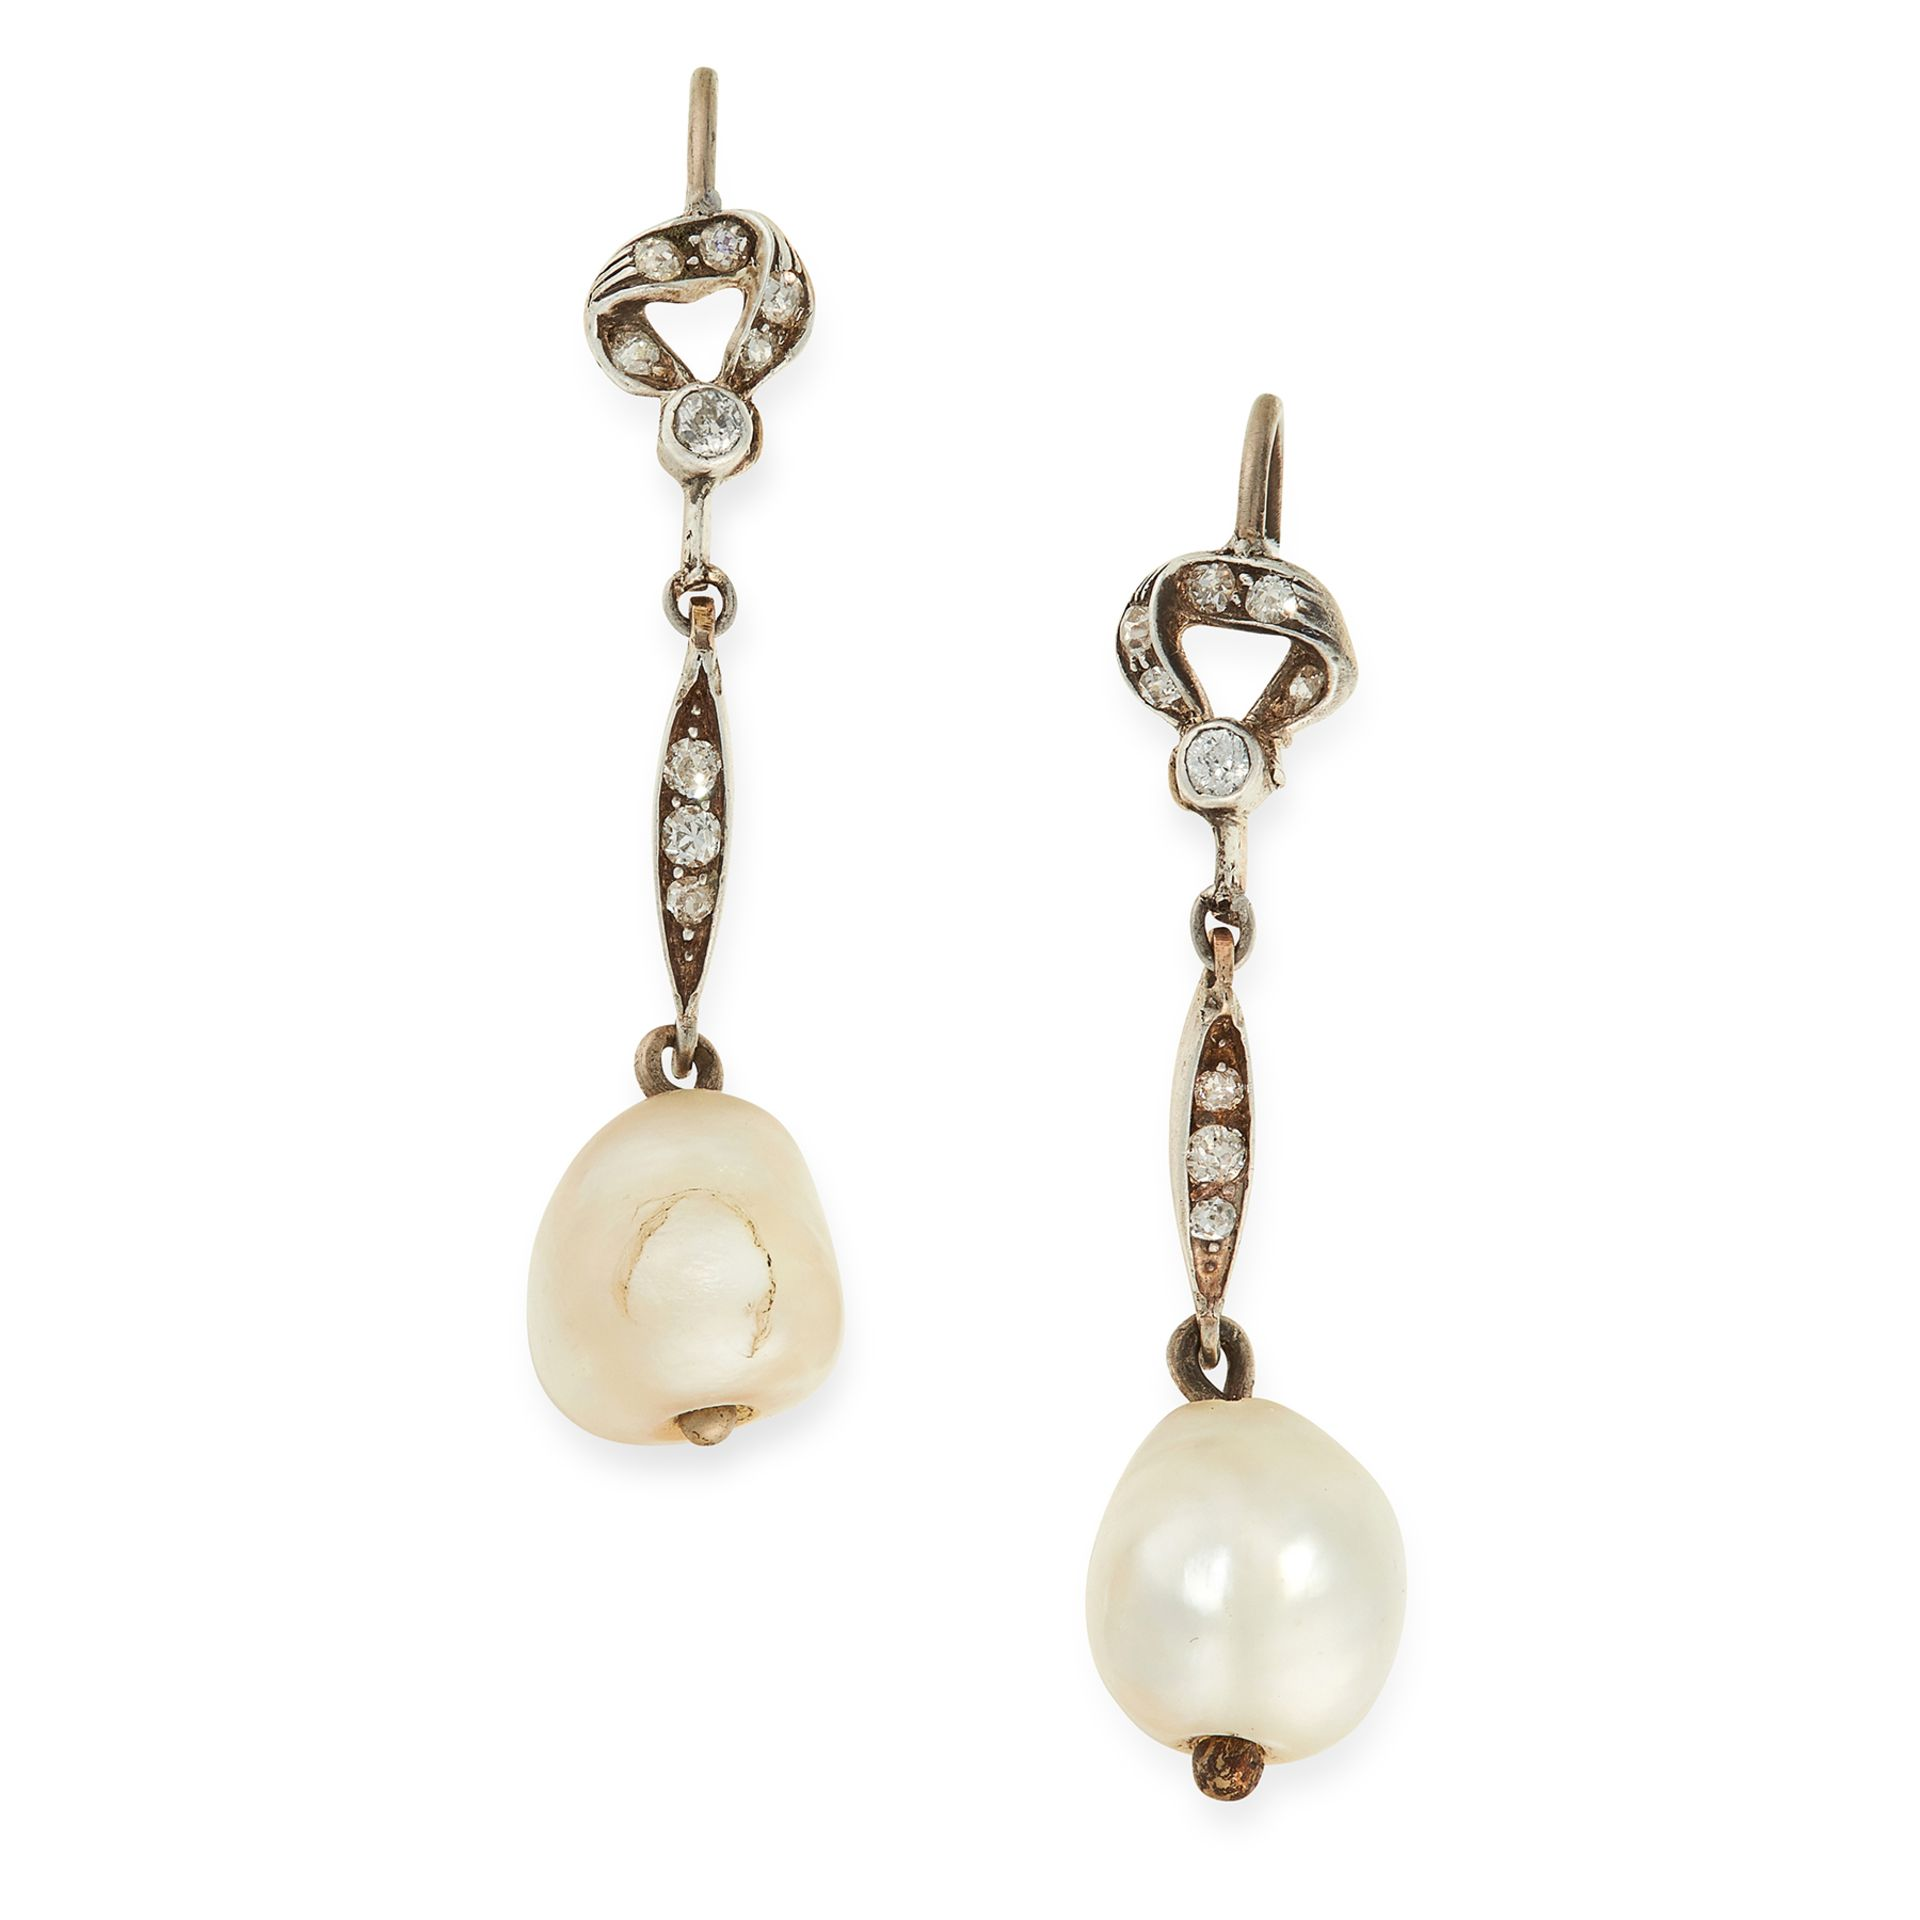 A PAIR OF NATURAL PEARL AND DIAMOND EARRINGS each set with a pearl of 10.4mm and 9.9mm, suspended